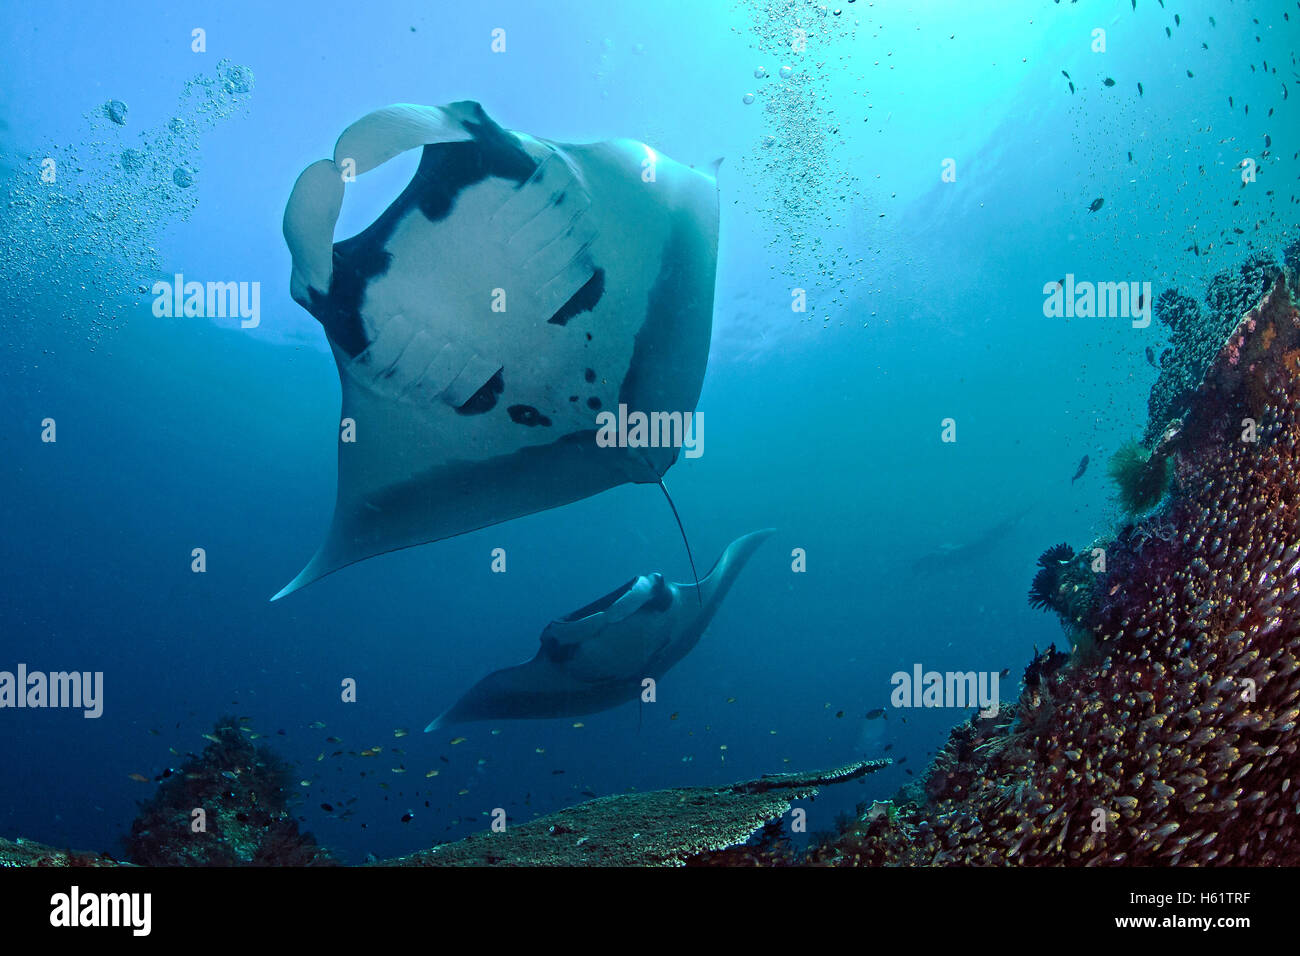 Manta rays soar over coral reef. - Stock Image